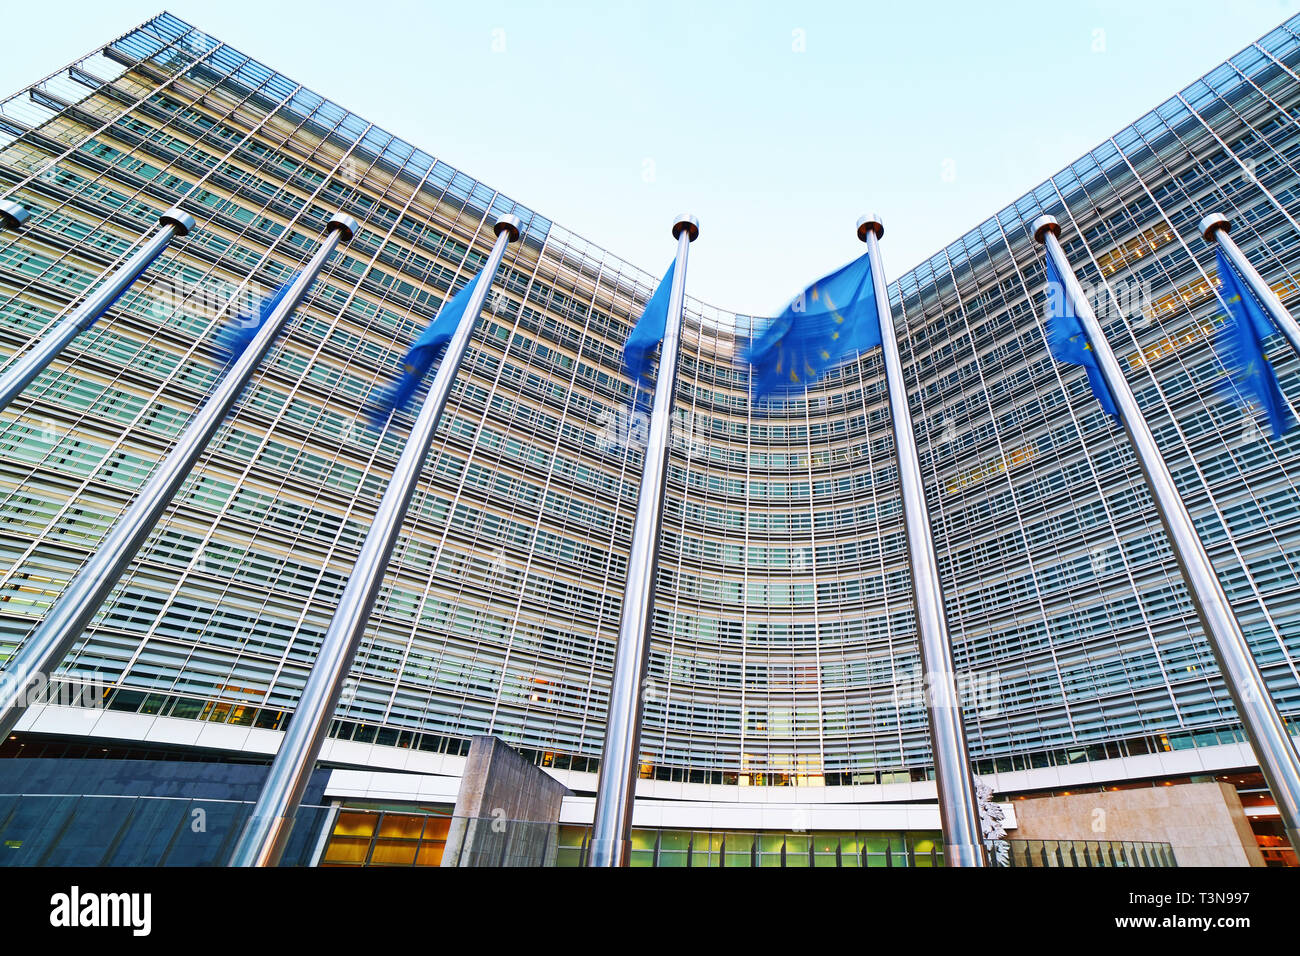 European Union EU flags waving in front of the Berlaymont building, headquarters of the European Commission in Brussels. - Stock Image